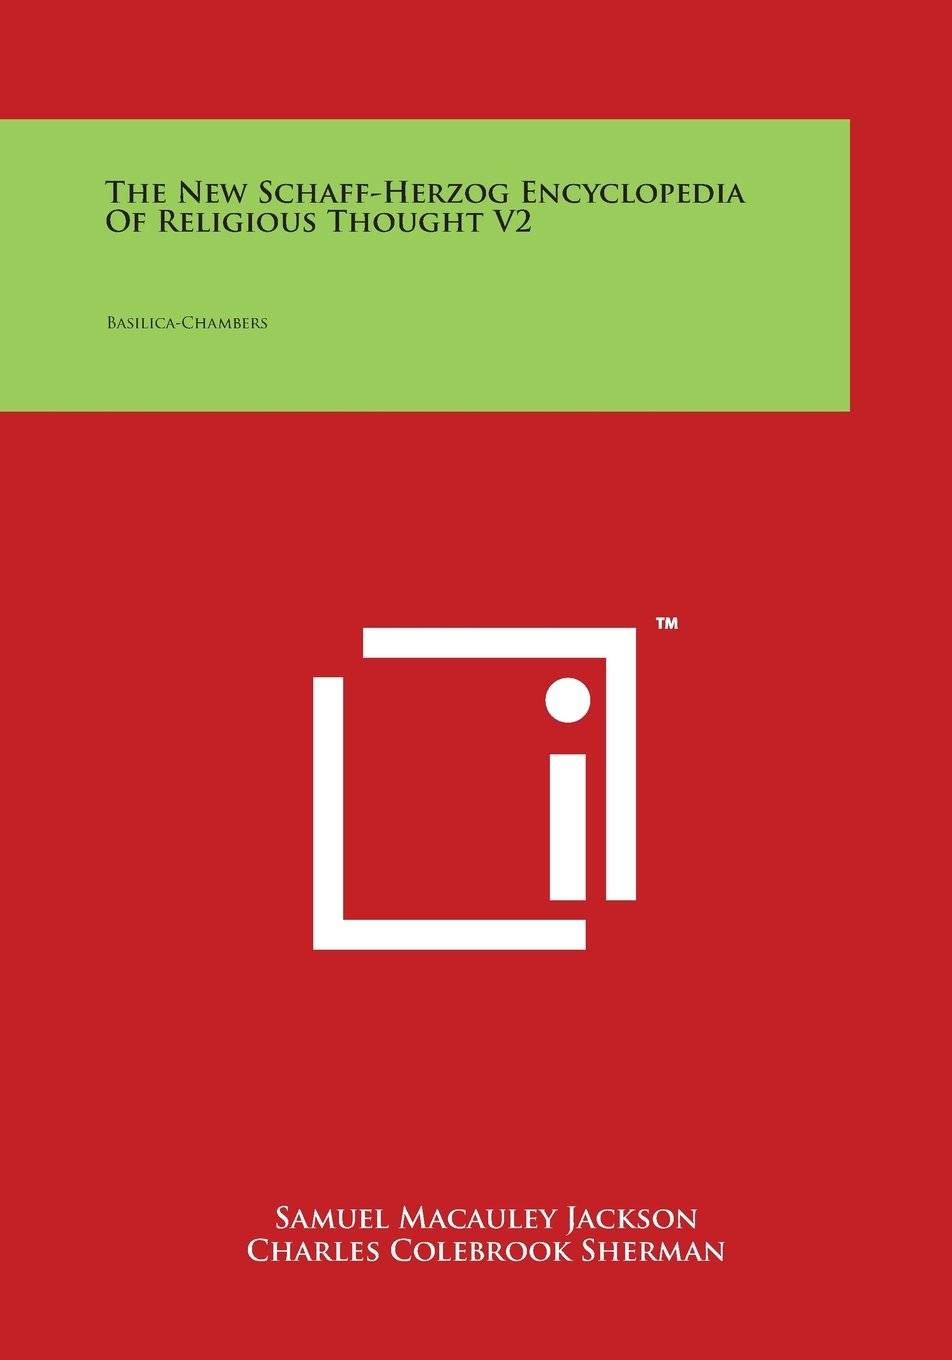 The New Schaff-Herzog Encyclopedia Of Religious Thought V2: Basilica-Chambers ebook